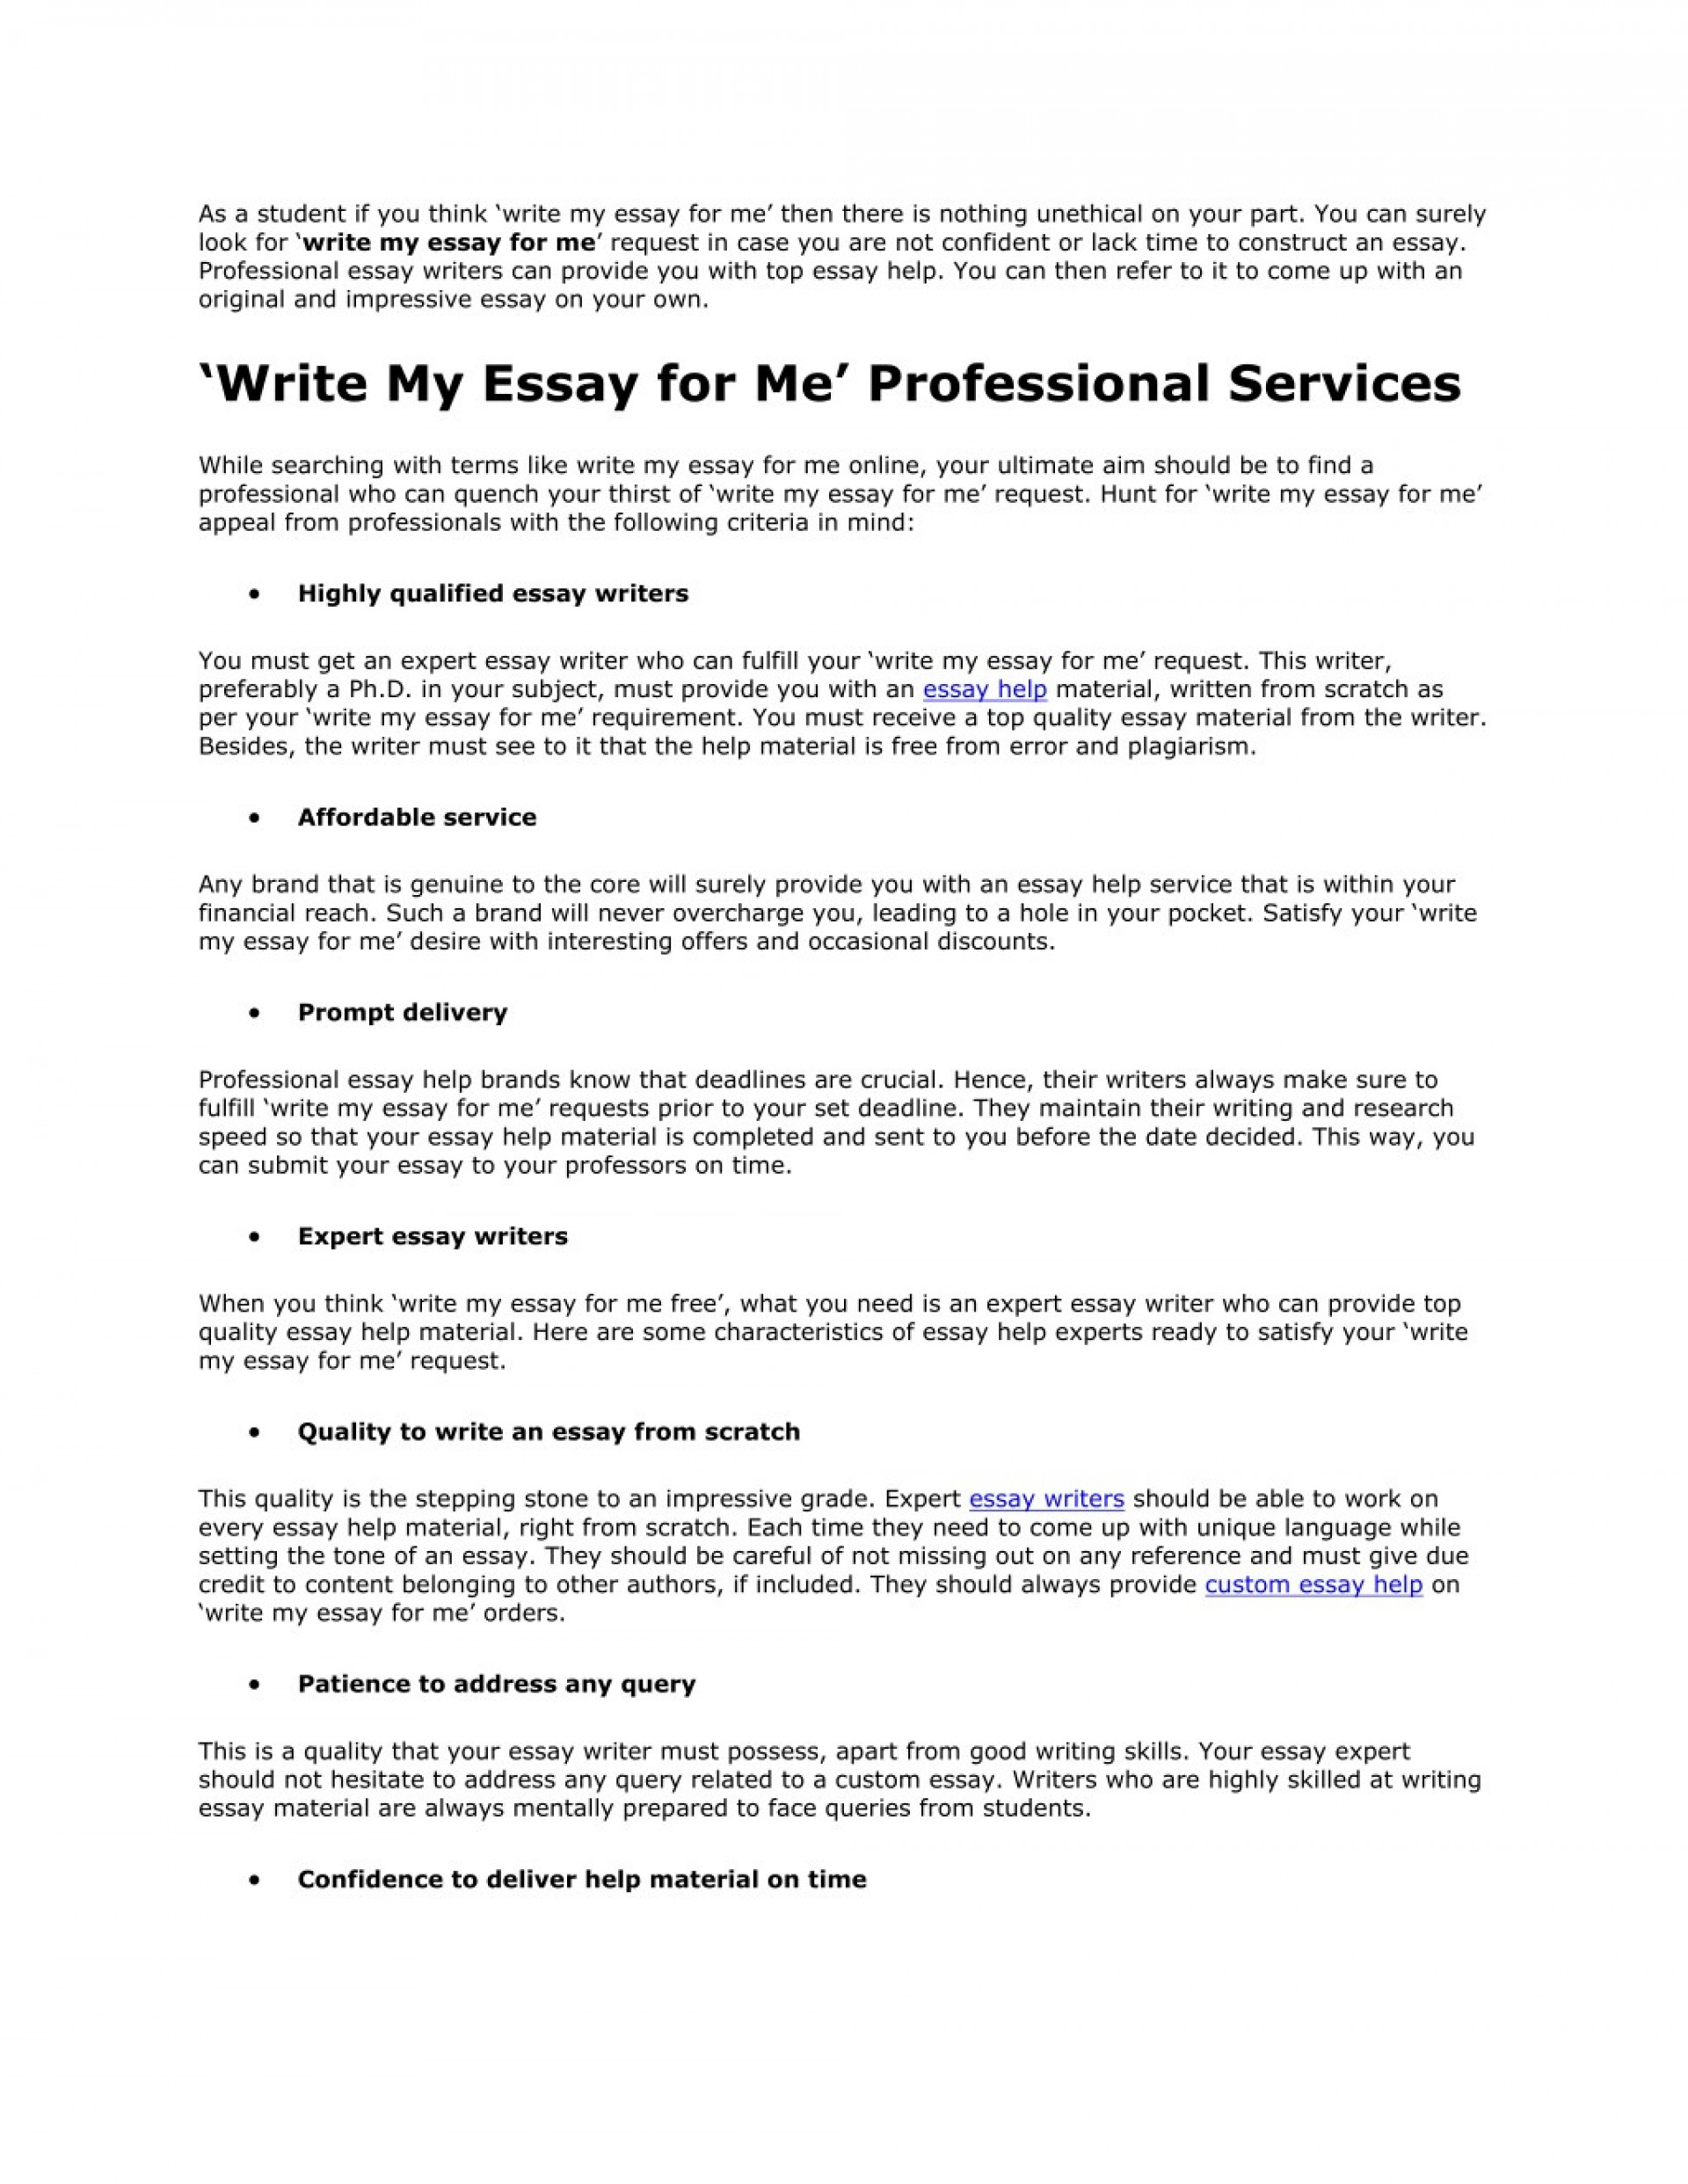 017 Write My Essay For Me Example As Student If You Think Surprising Reviews Canada Free Uk 1920